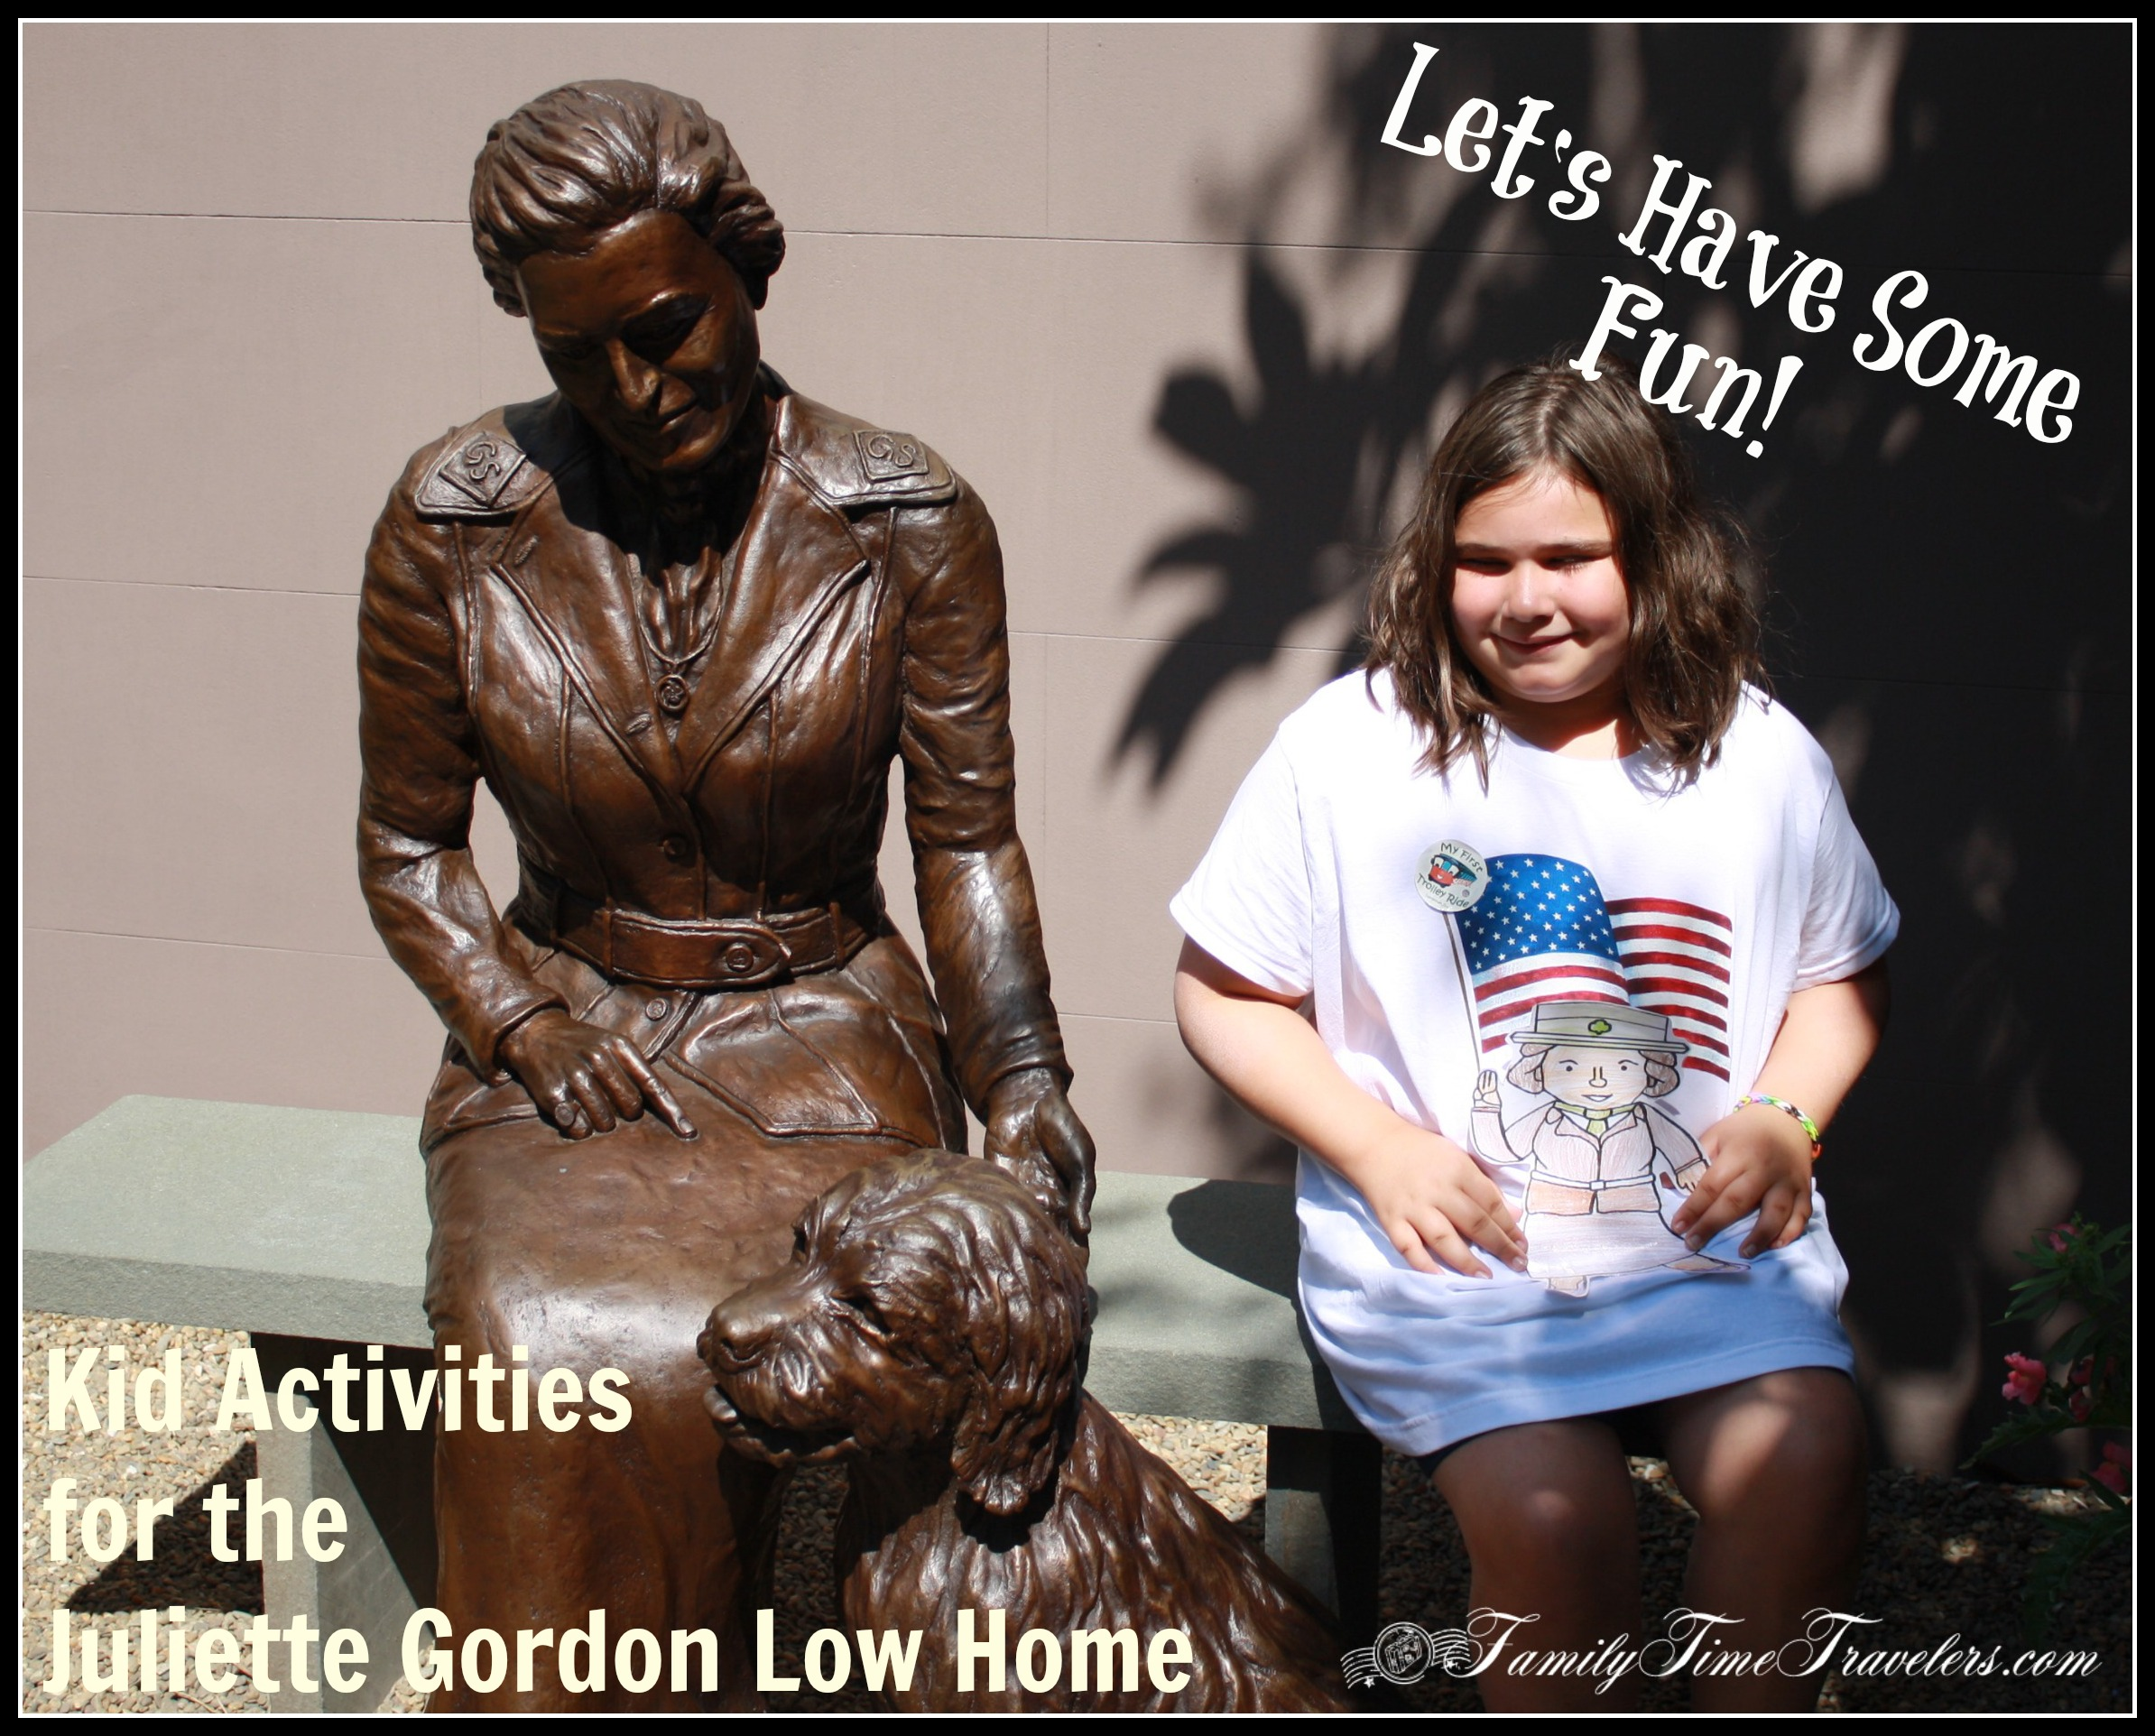 Kid Activities for the Juliette Gordon Low Home - Savannah, Ga | Family Time Travelers